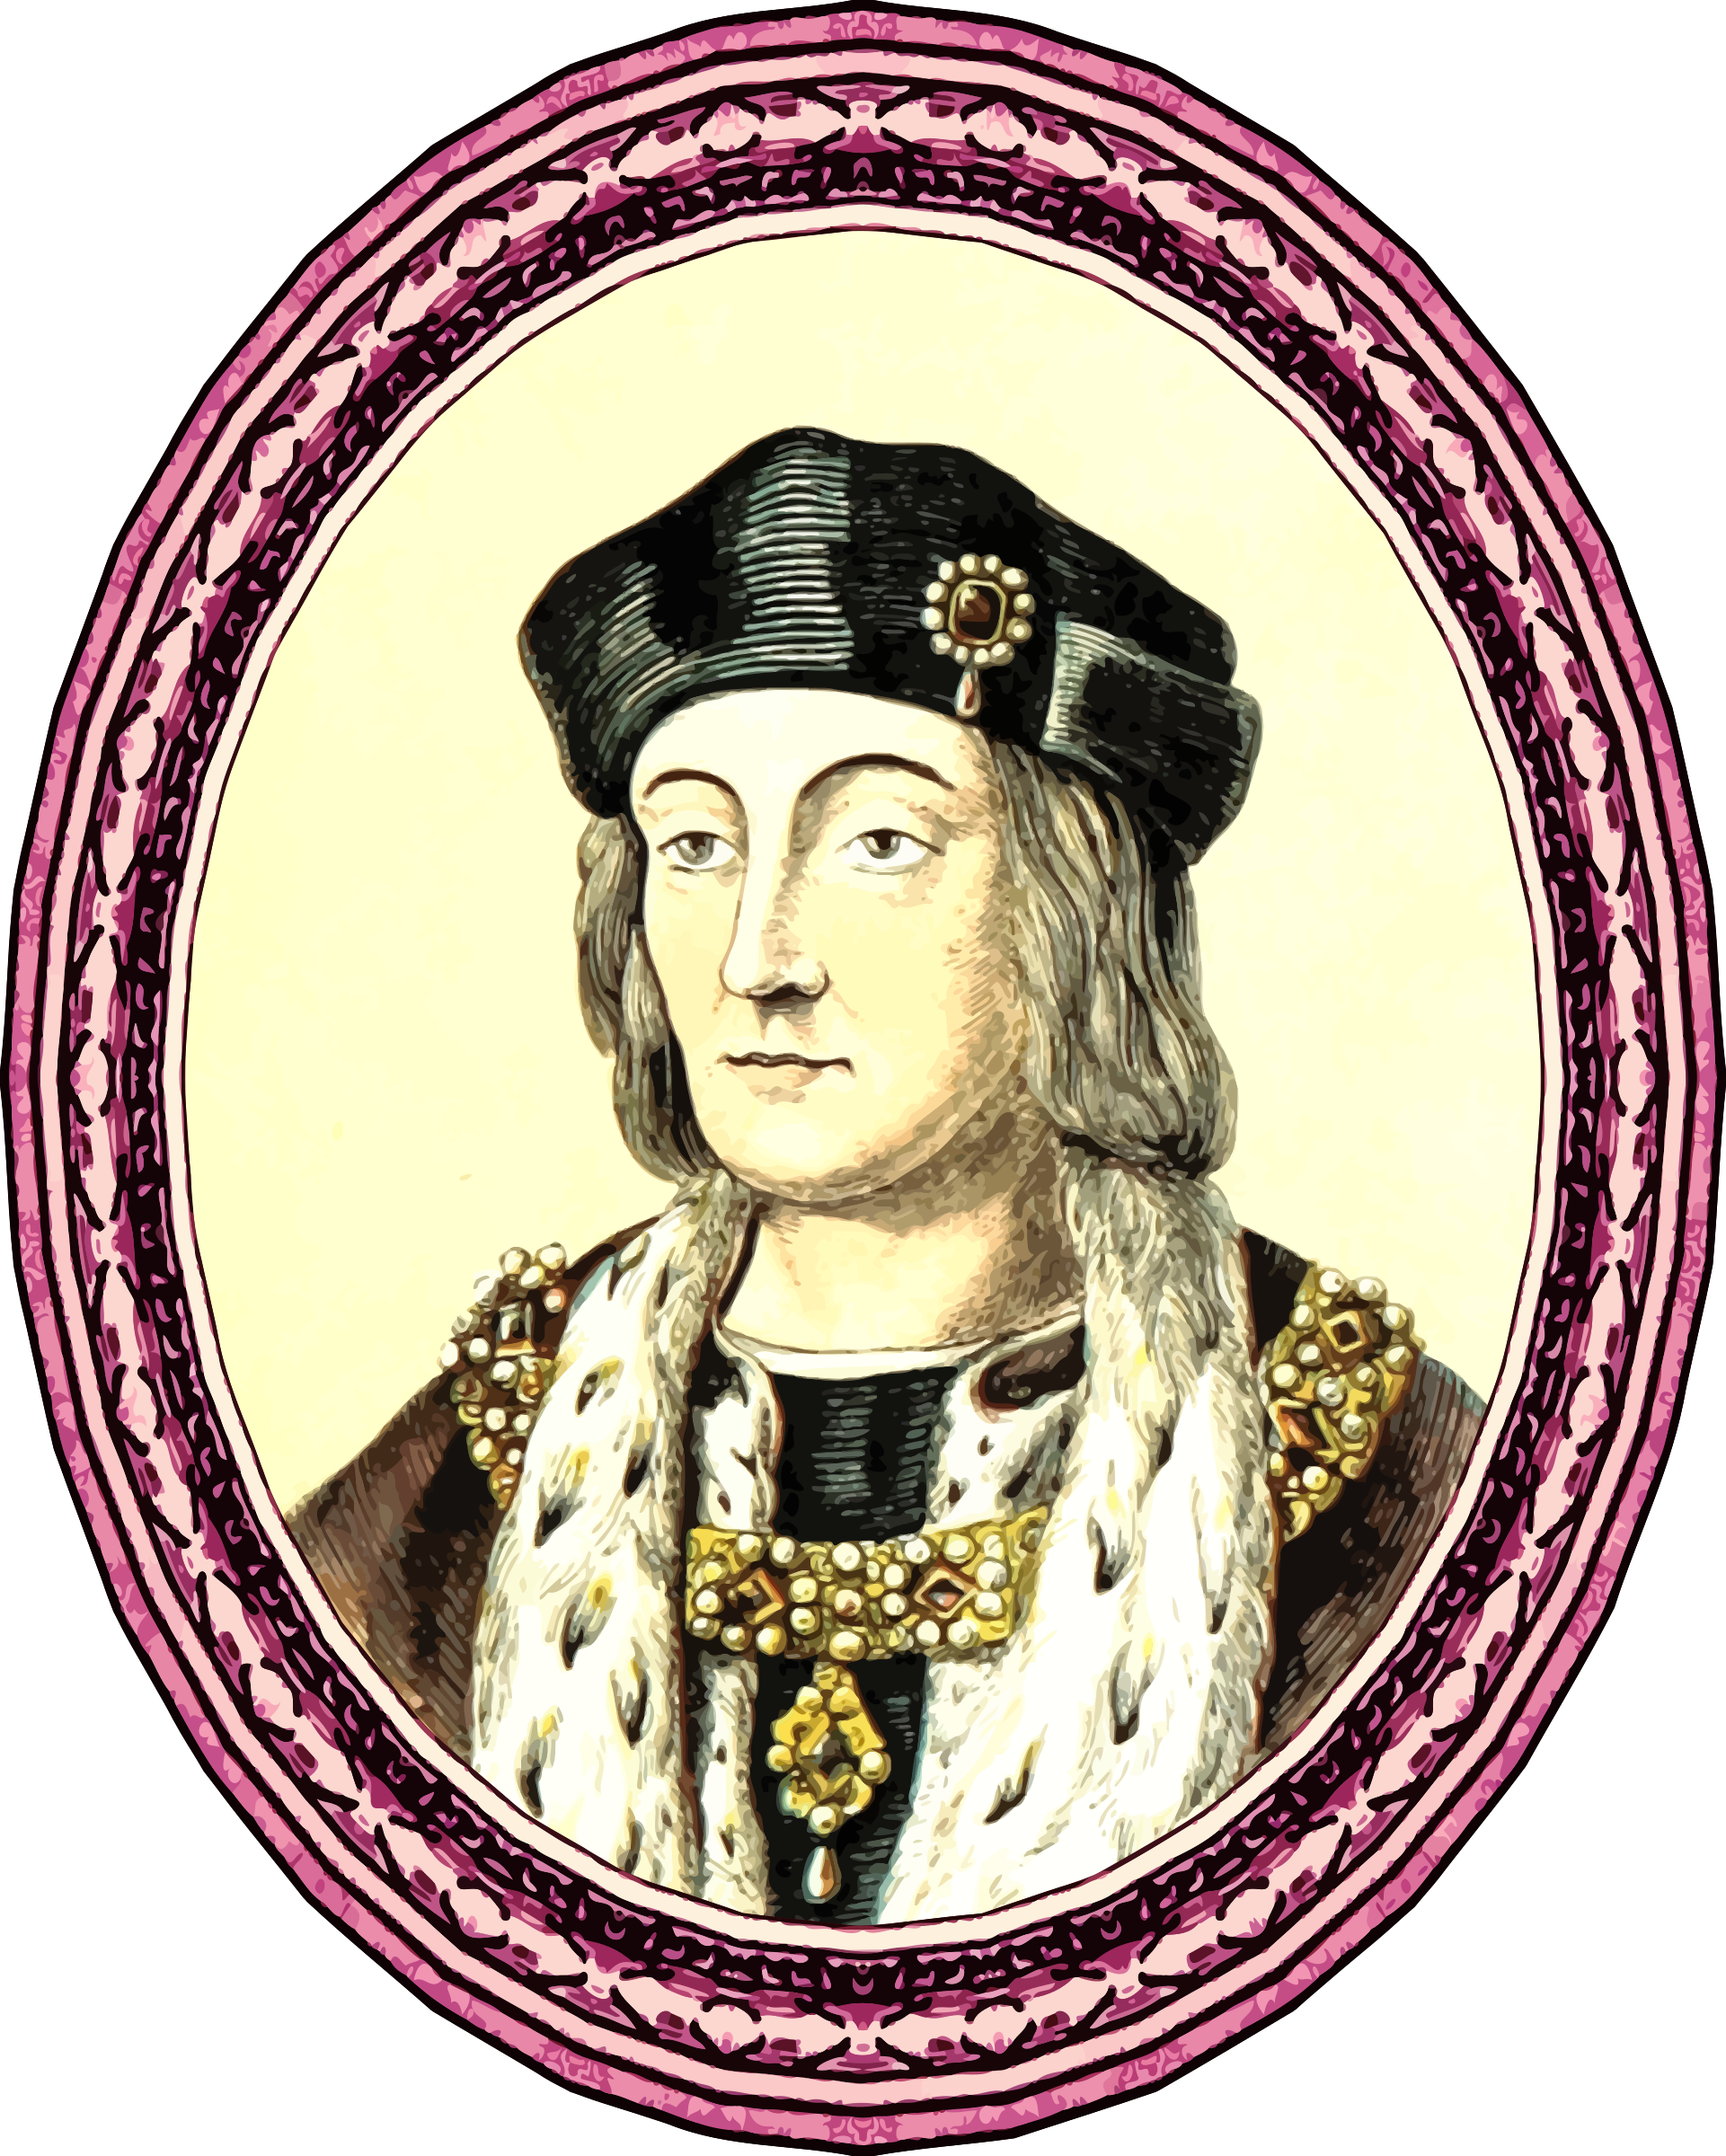 King Henry VII (framed) by Firkin